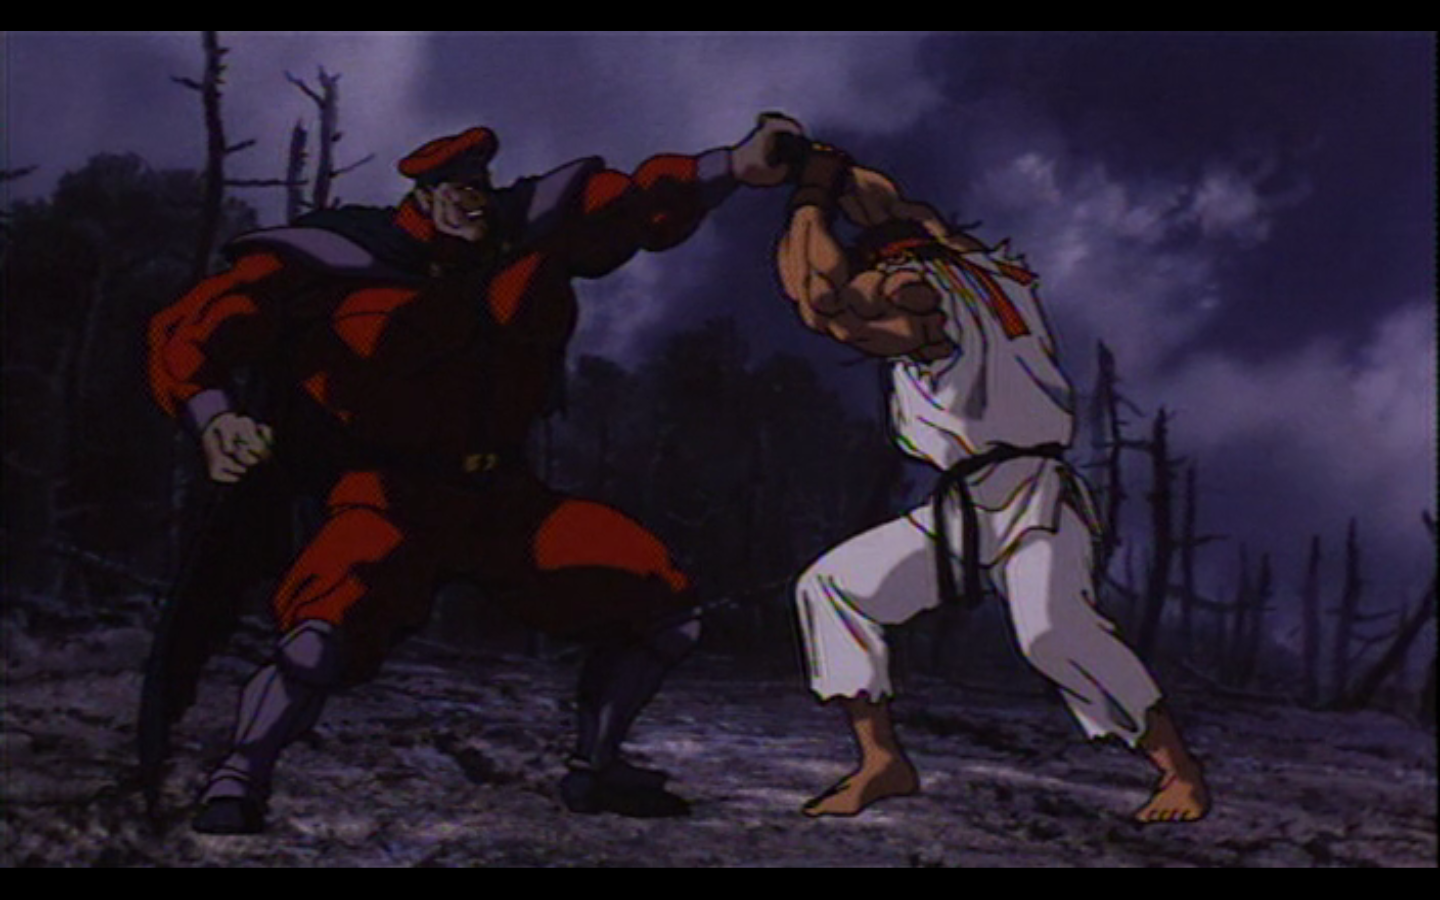 Episode 37: Street Fighter II: The Animated Movie Heroes